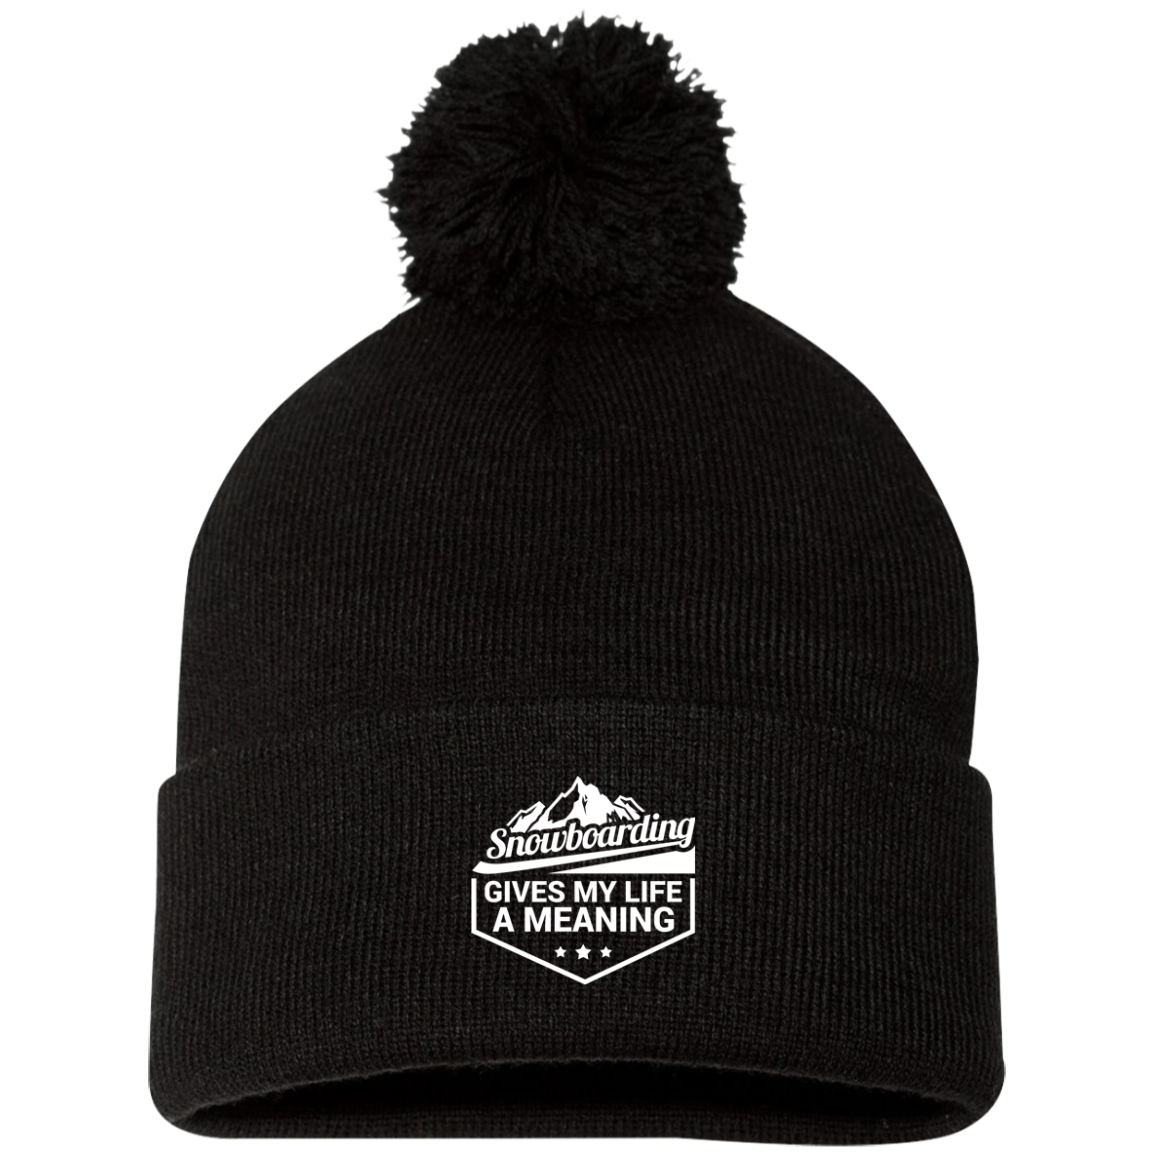 Snowboarding Gives My Life a Meaning Pom Pom Knit Cap - Powderaddicts